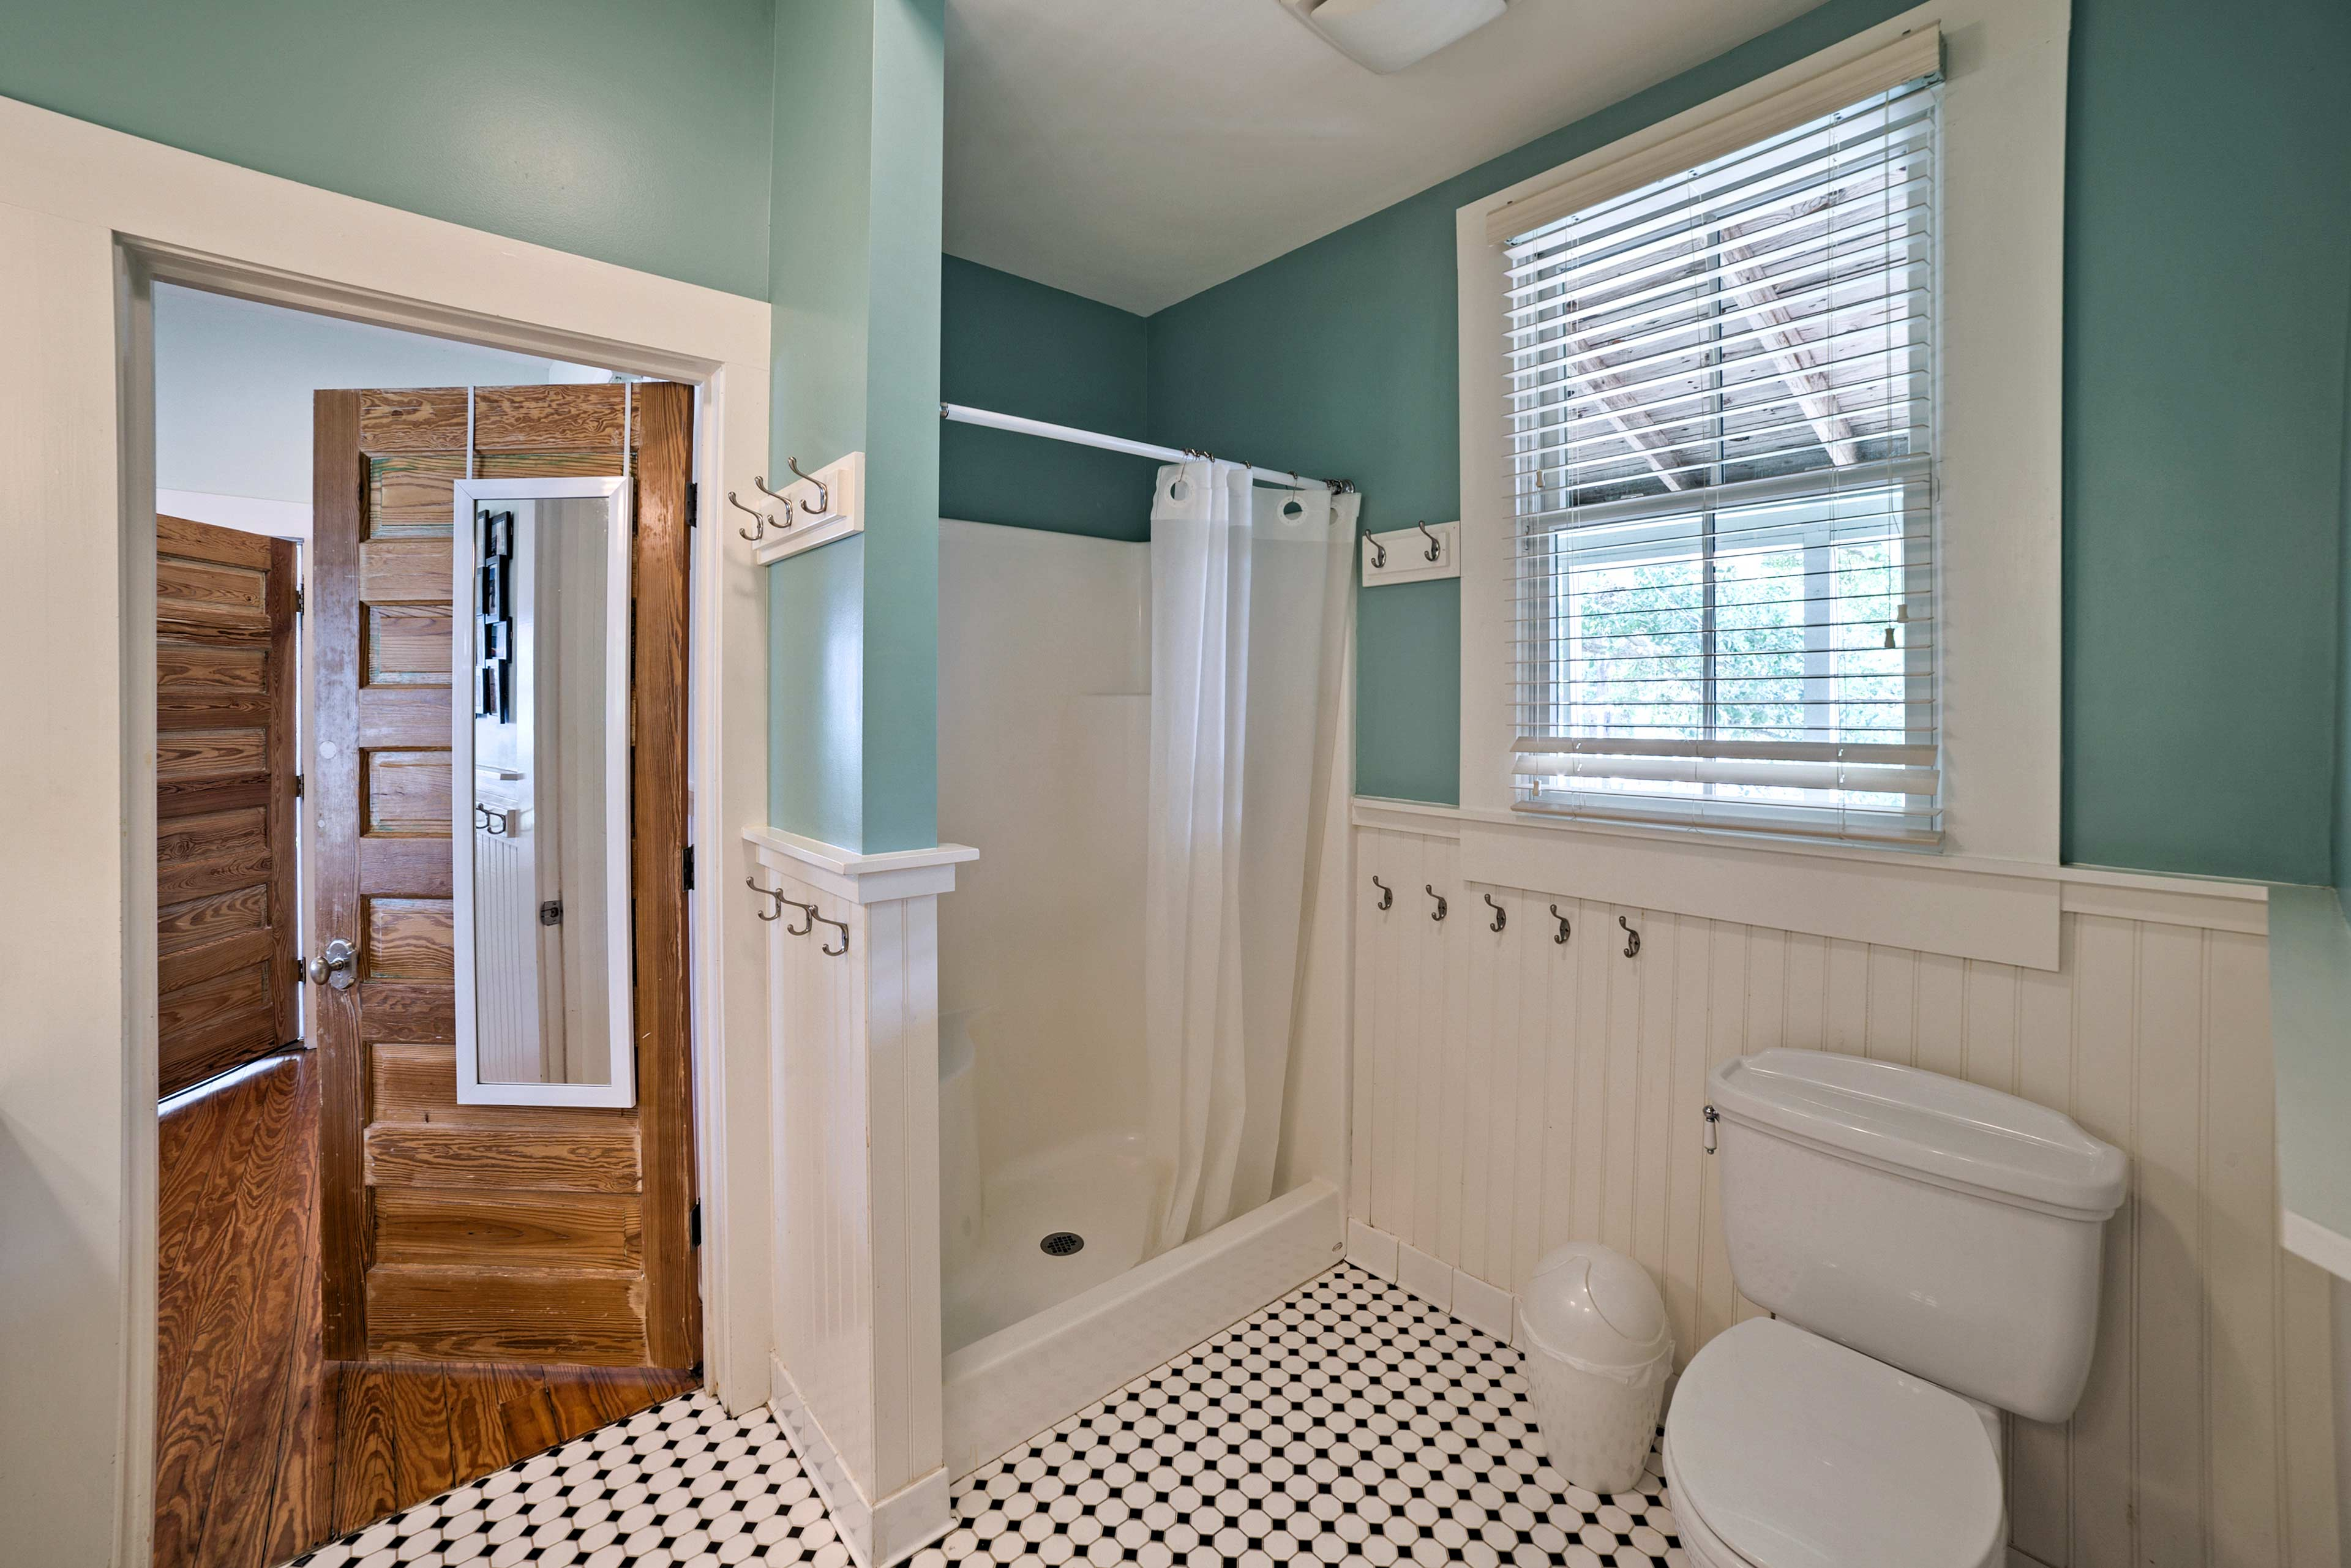 A Jack-and-Jill bathroom adds convenience to morning preparations.